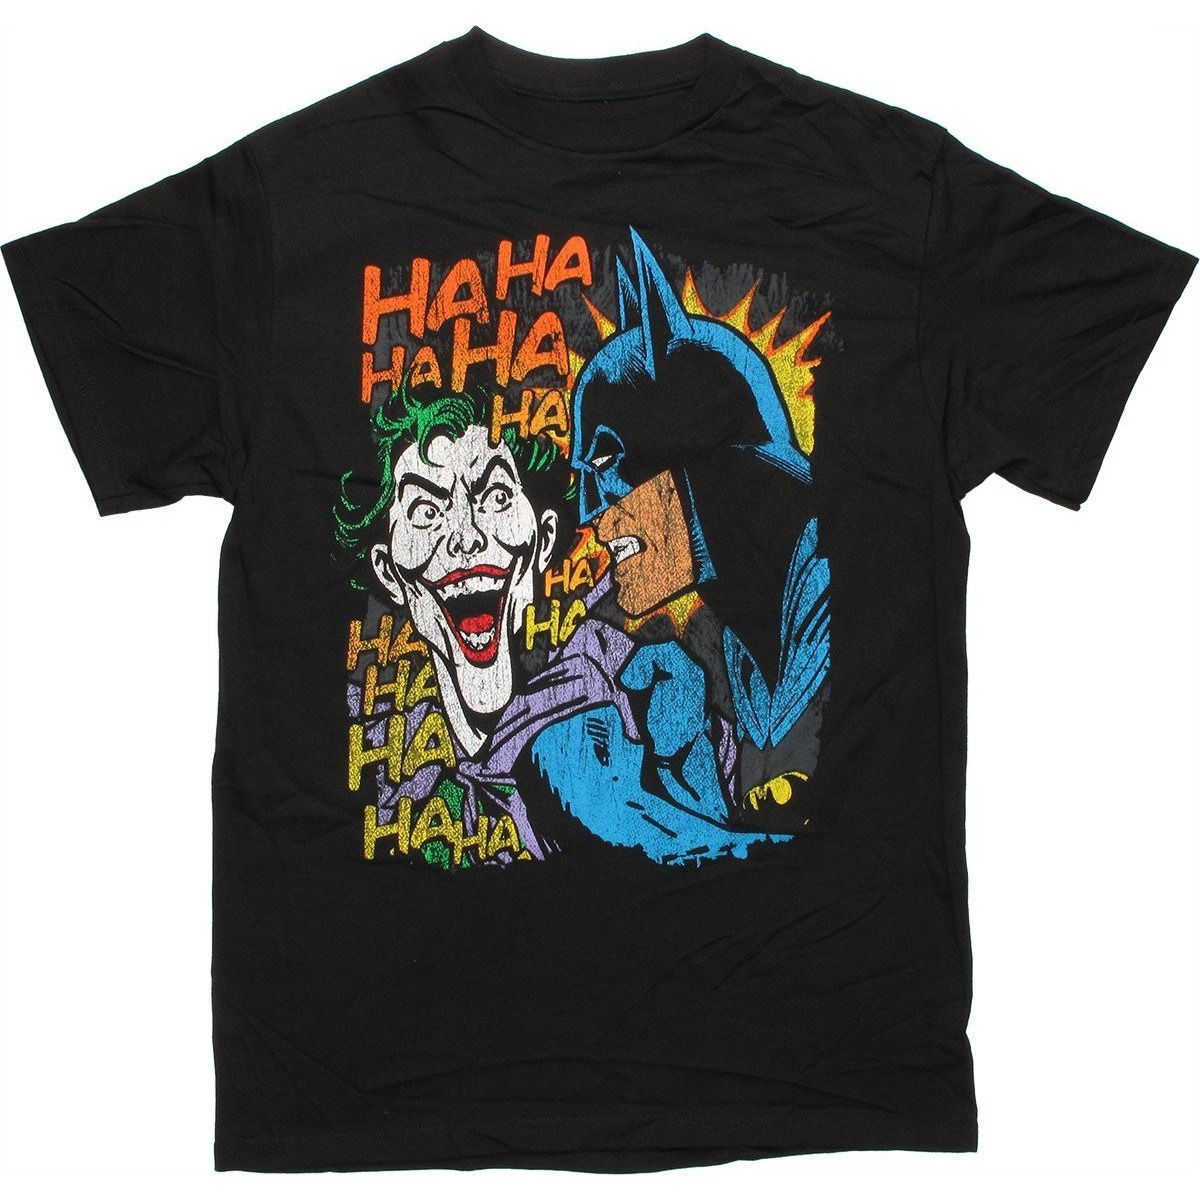 Batman Joker HAHA Shirt Uncanny!